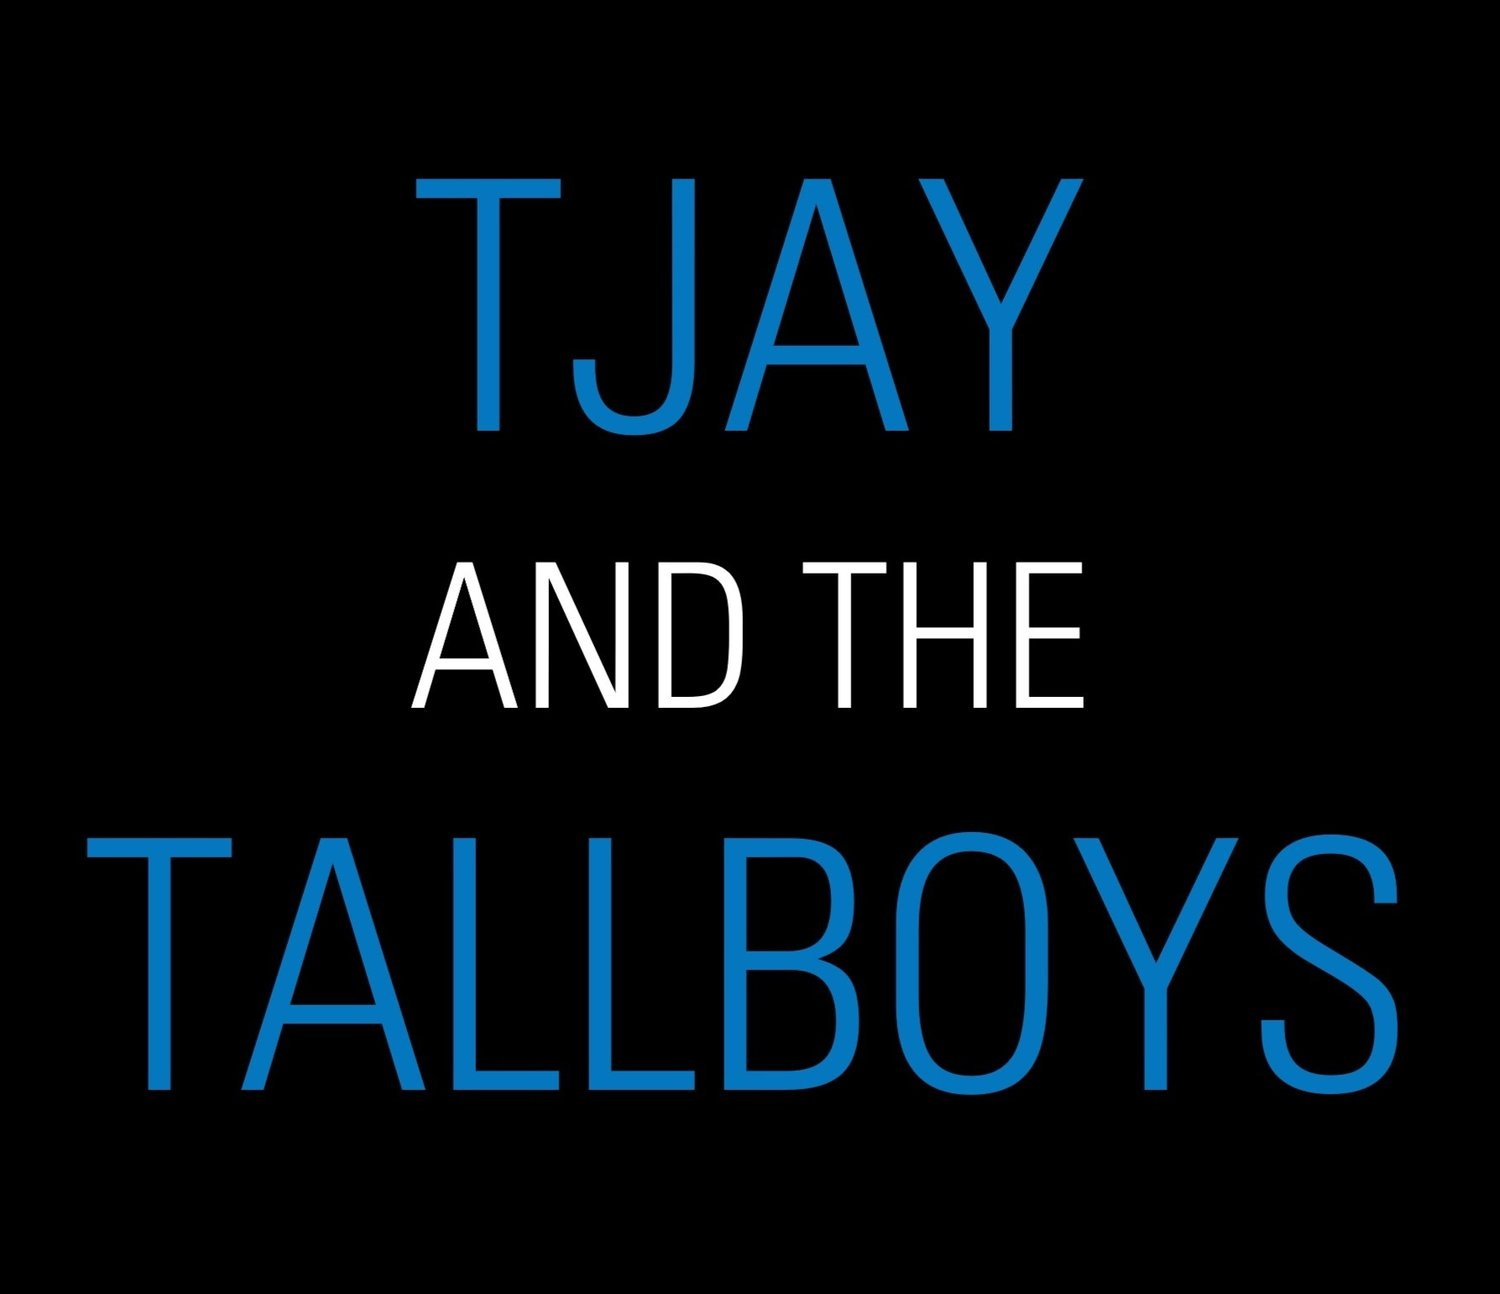 TJay and the Tallboys